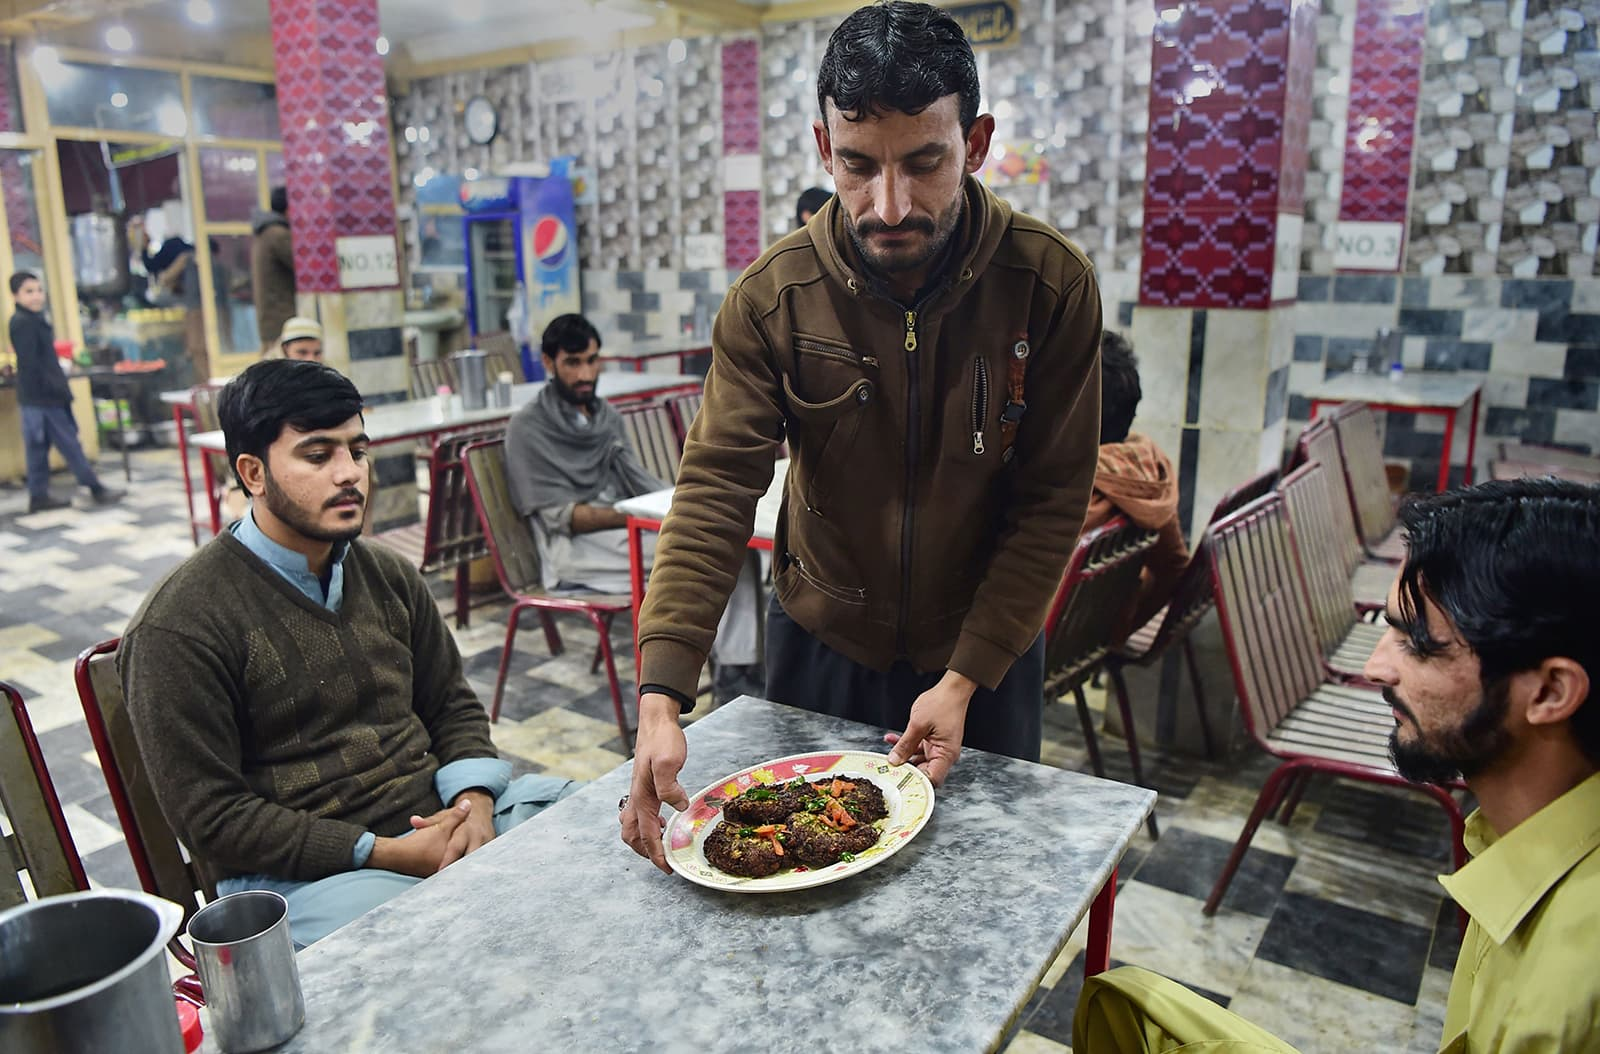 A man serves customers a plate of kebabs at the Tory Kebab House in Namak Mandi in Peshawar. — AFP